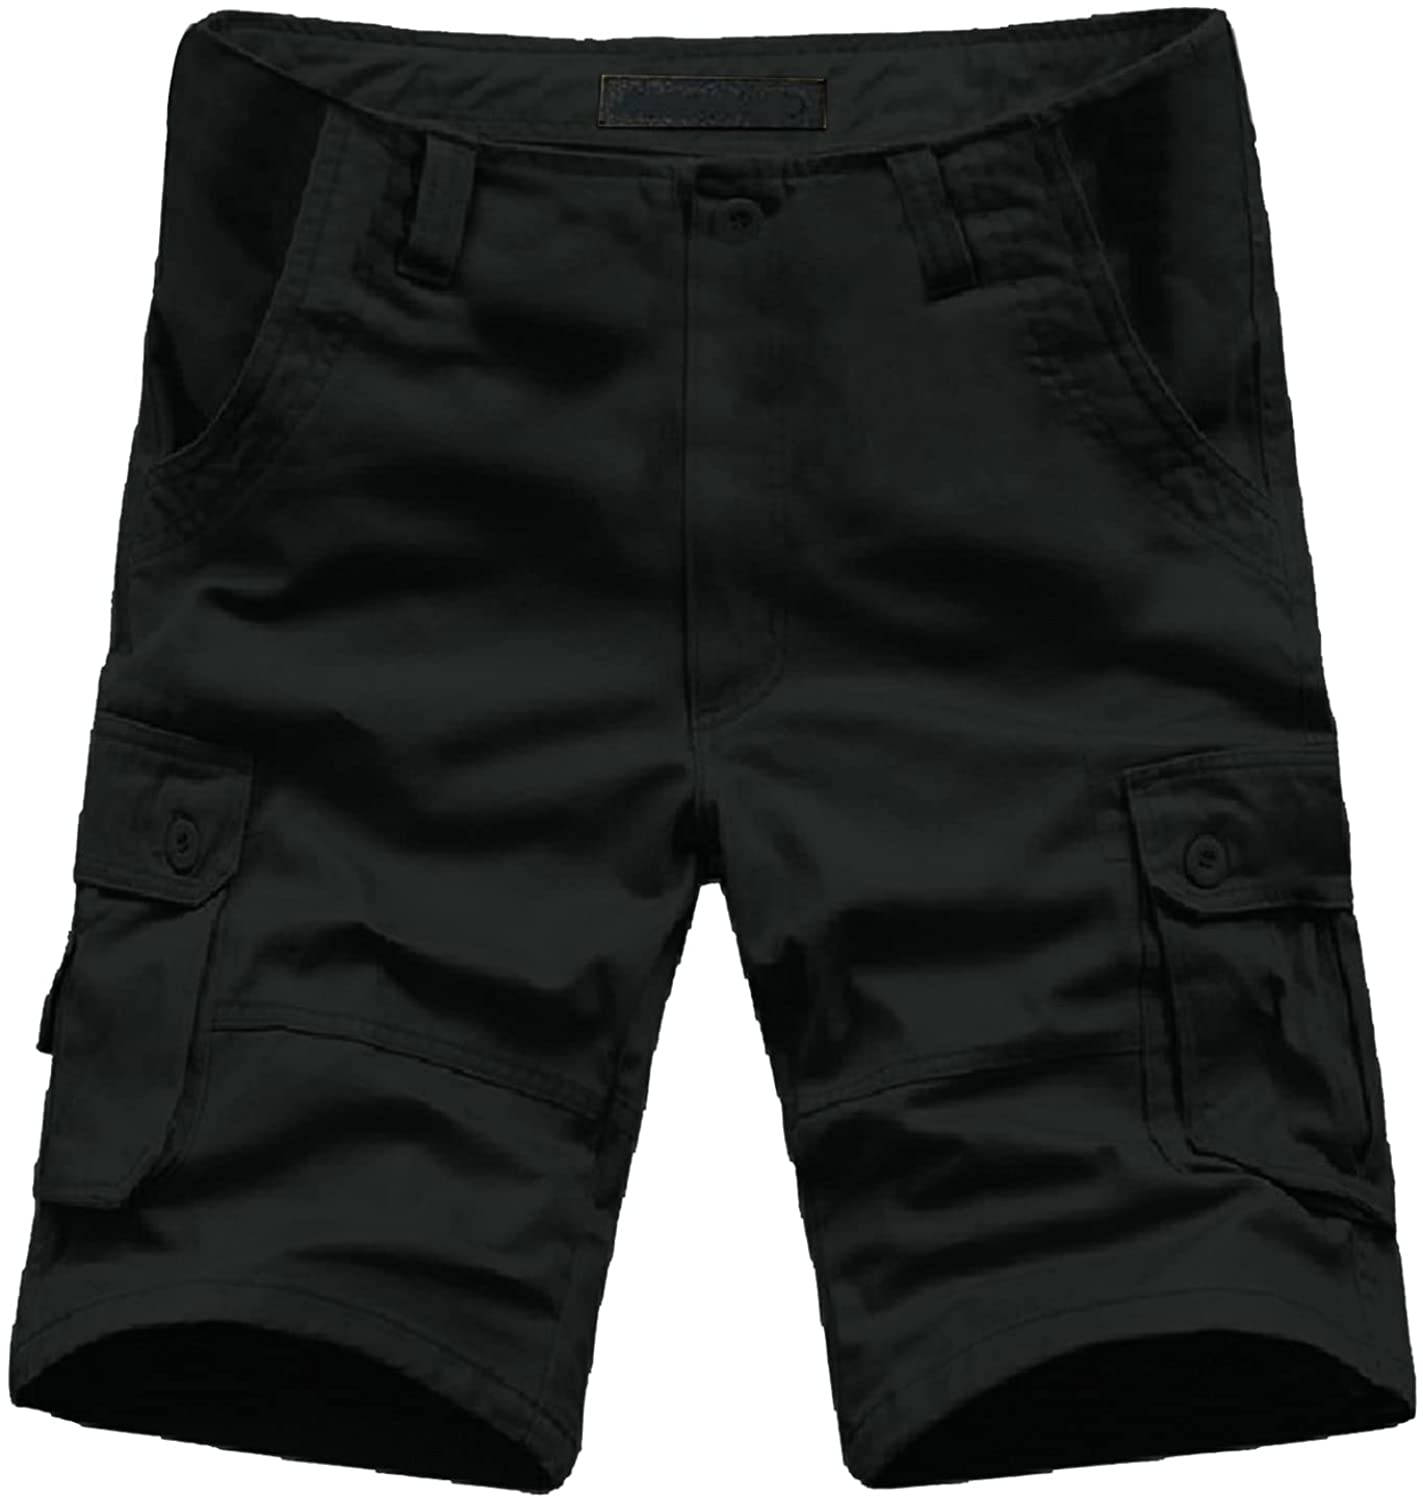 PHSHY Cargo Shorts for Men Summer Outdoor Hiking Work Trousers Capri Pants Casual Elastic Waist Big and Tall Shorts